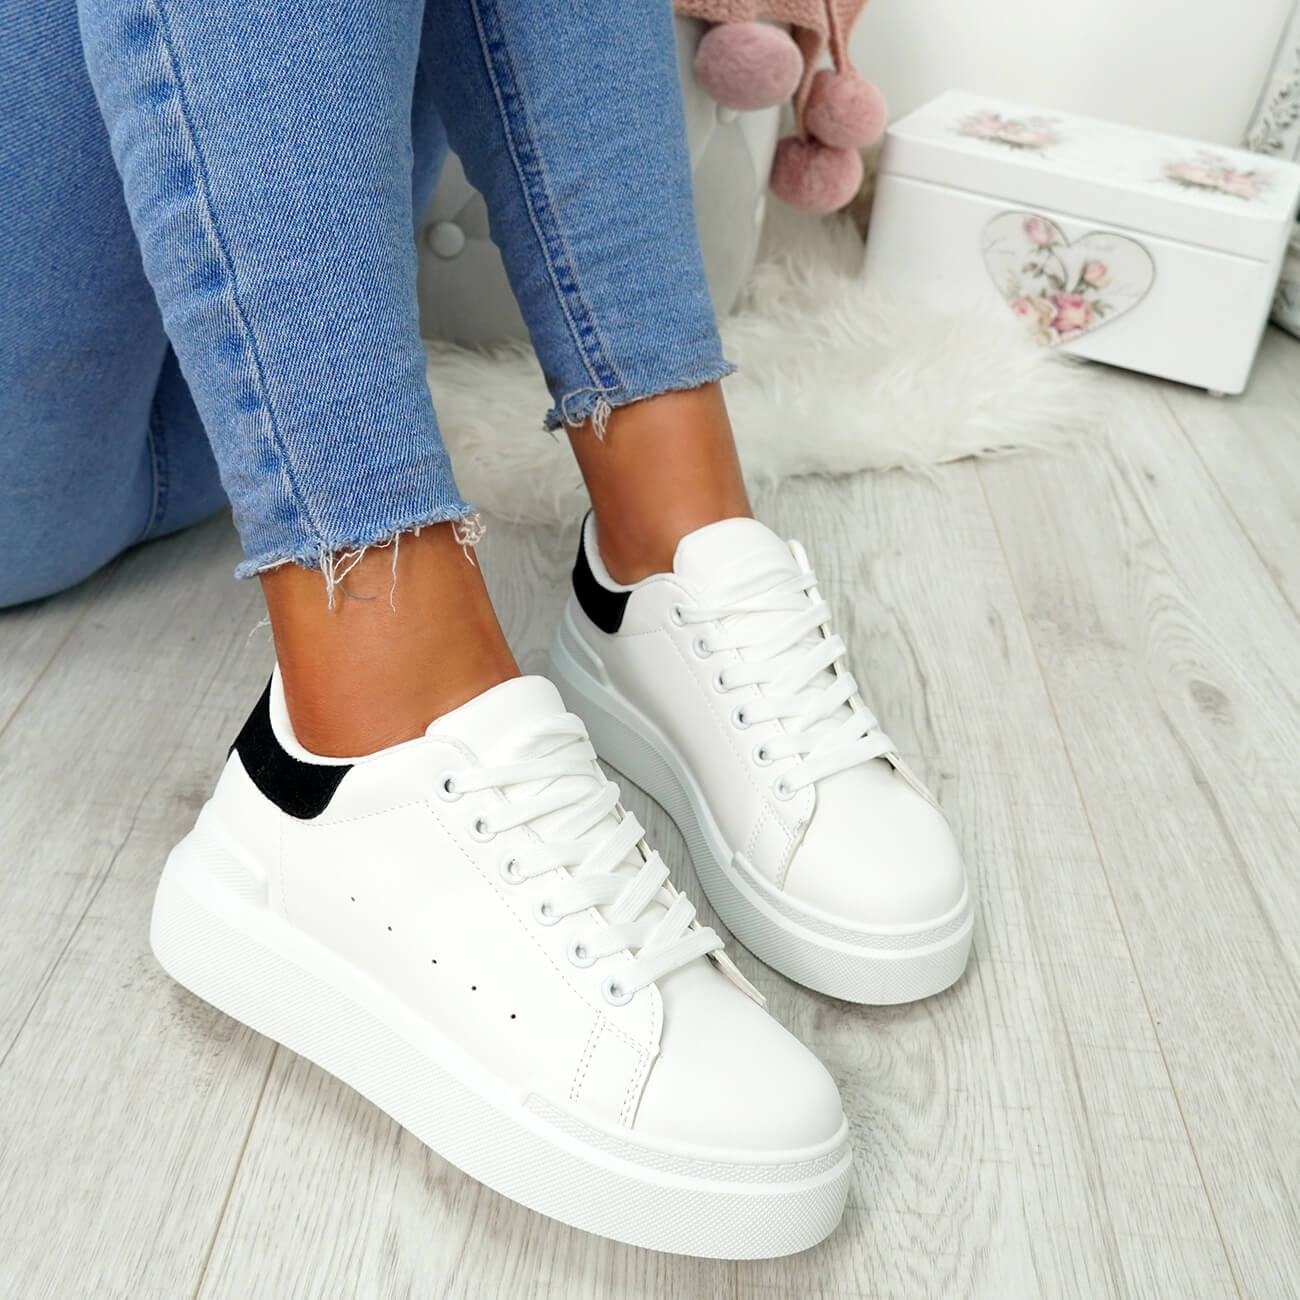 WOMENS-LADIES-LACE-UP-PLIMSOLL-SNEAKERS-CROC-SNAKE-TRAINERS-CASUAL-SHOES-SIZE thumbnail 34